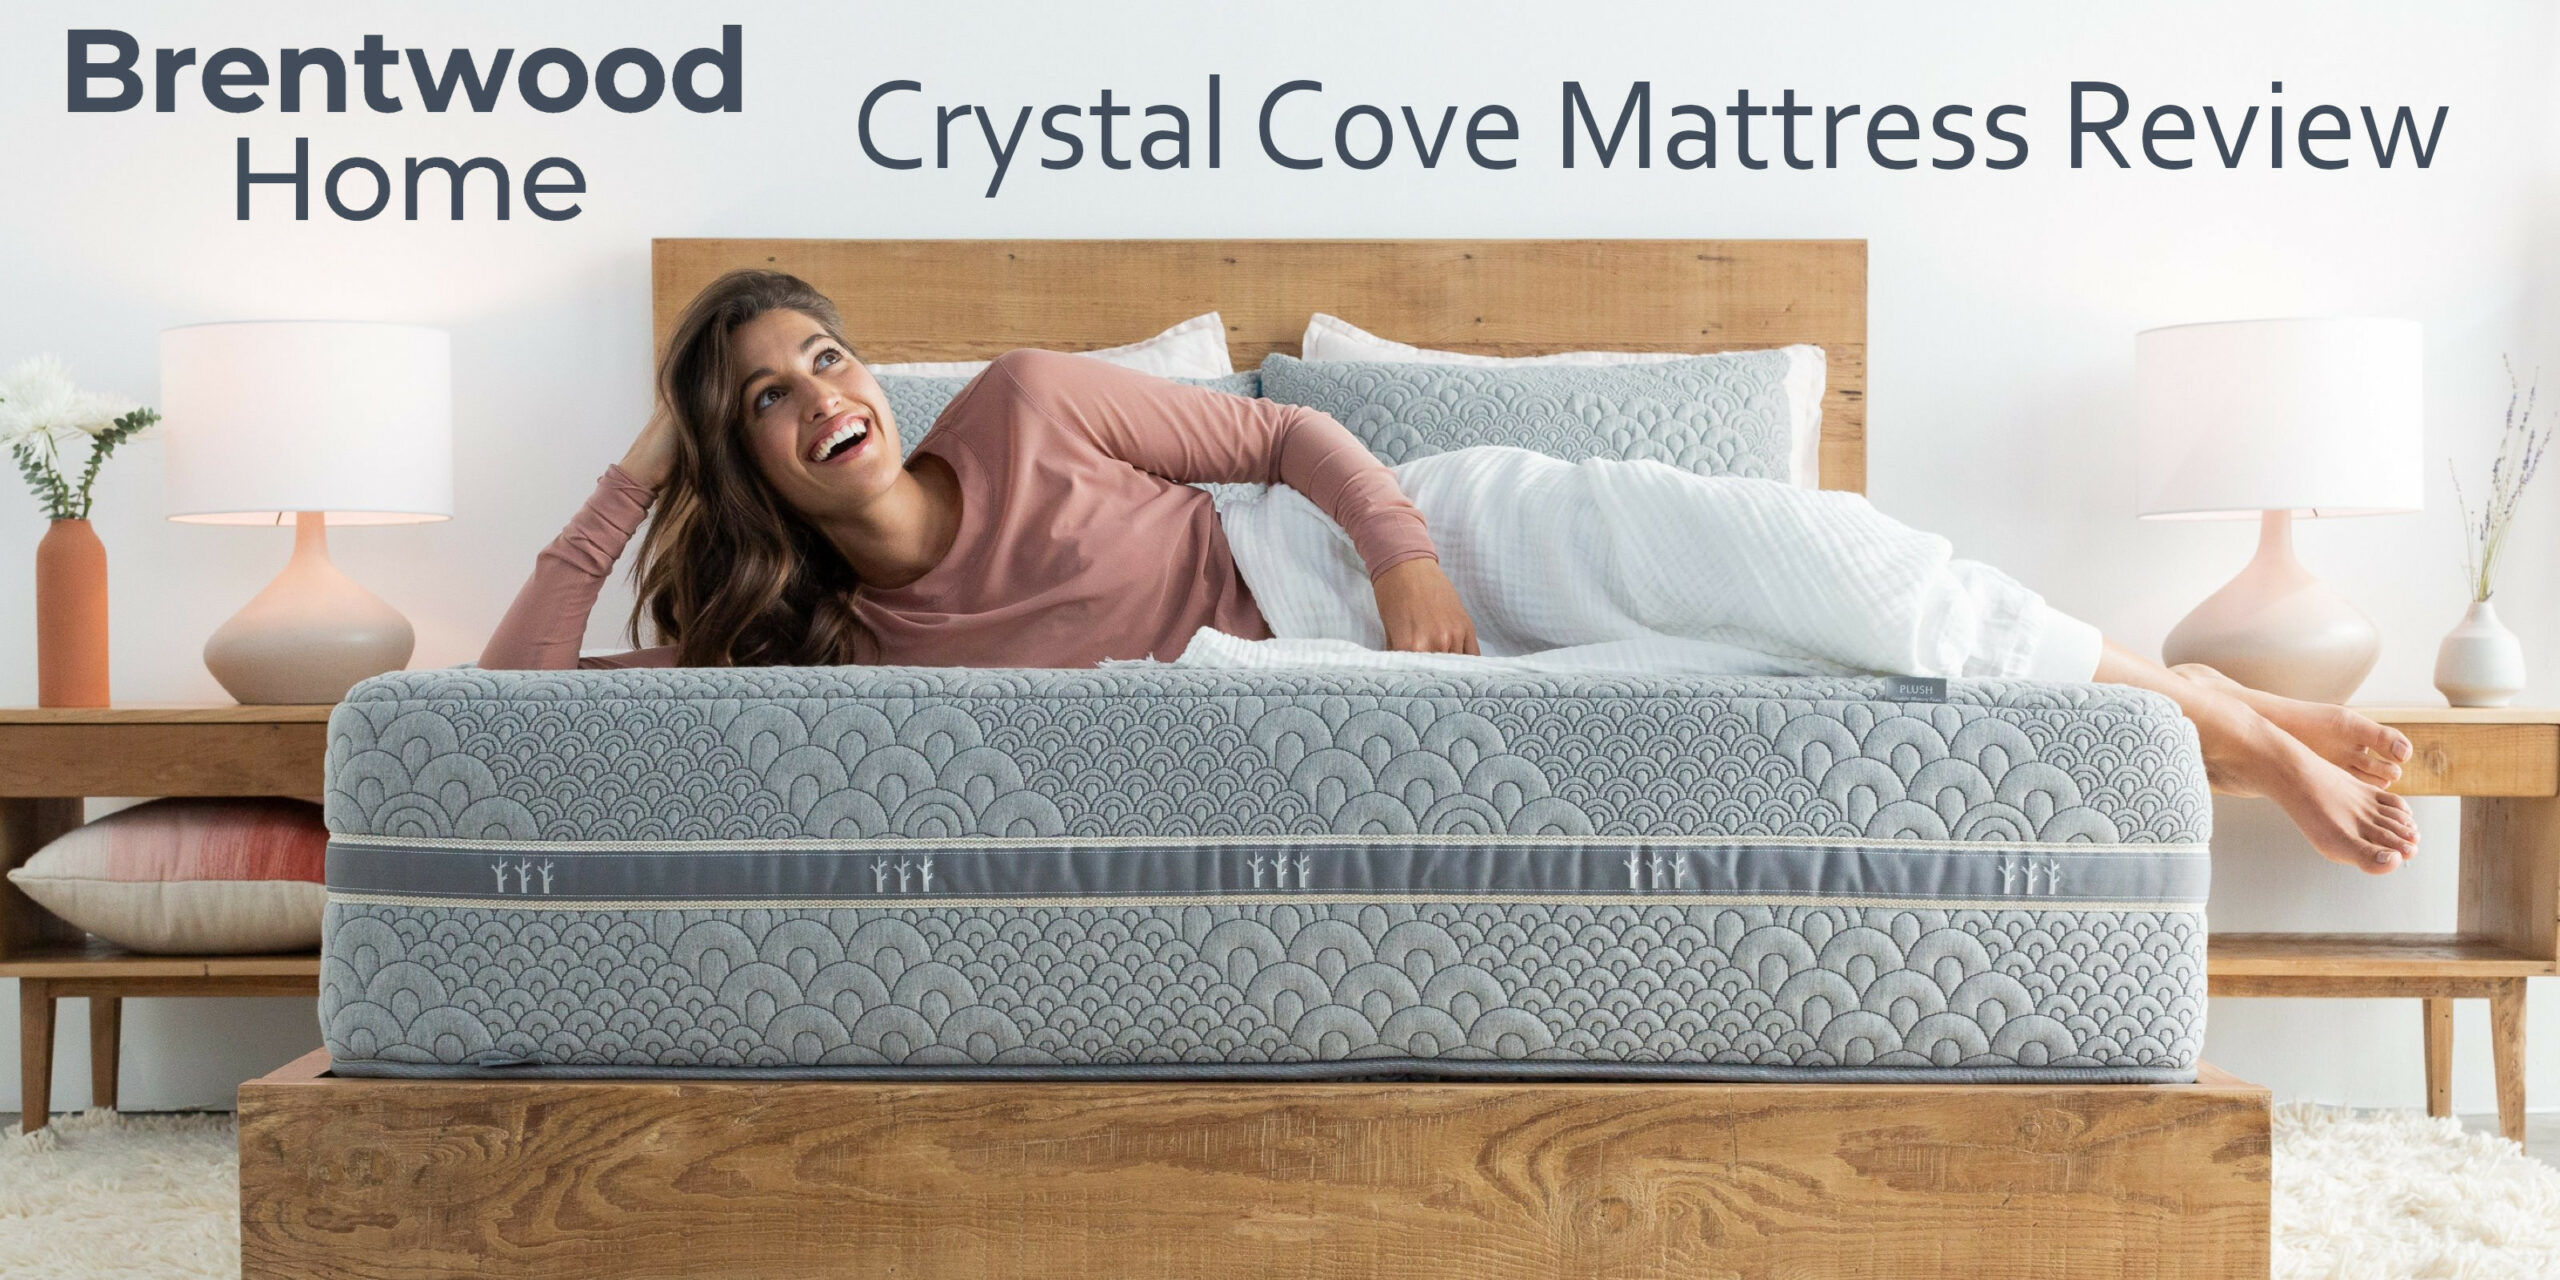 Crystal Cove Brentwood Home Mattress Review